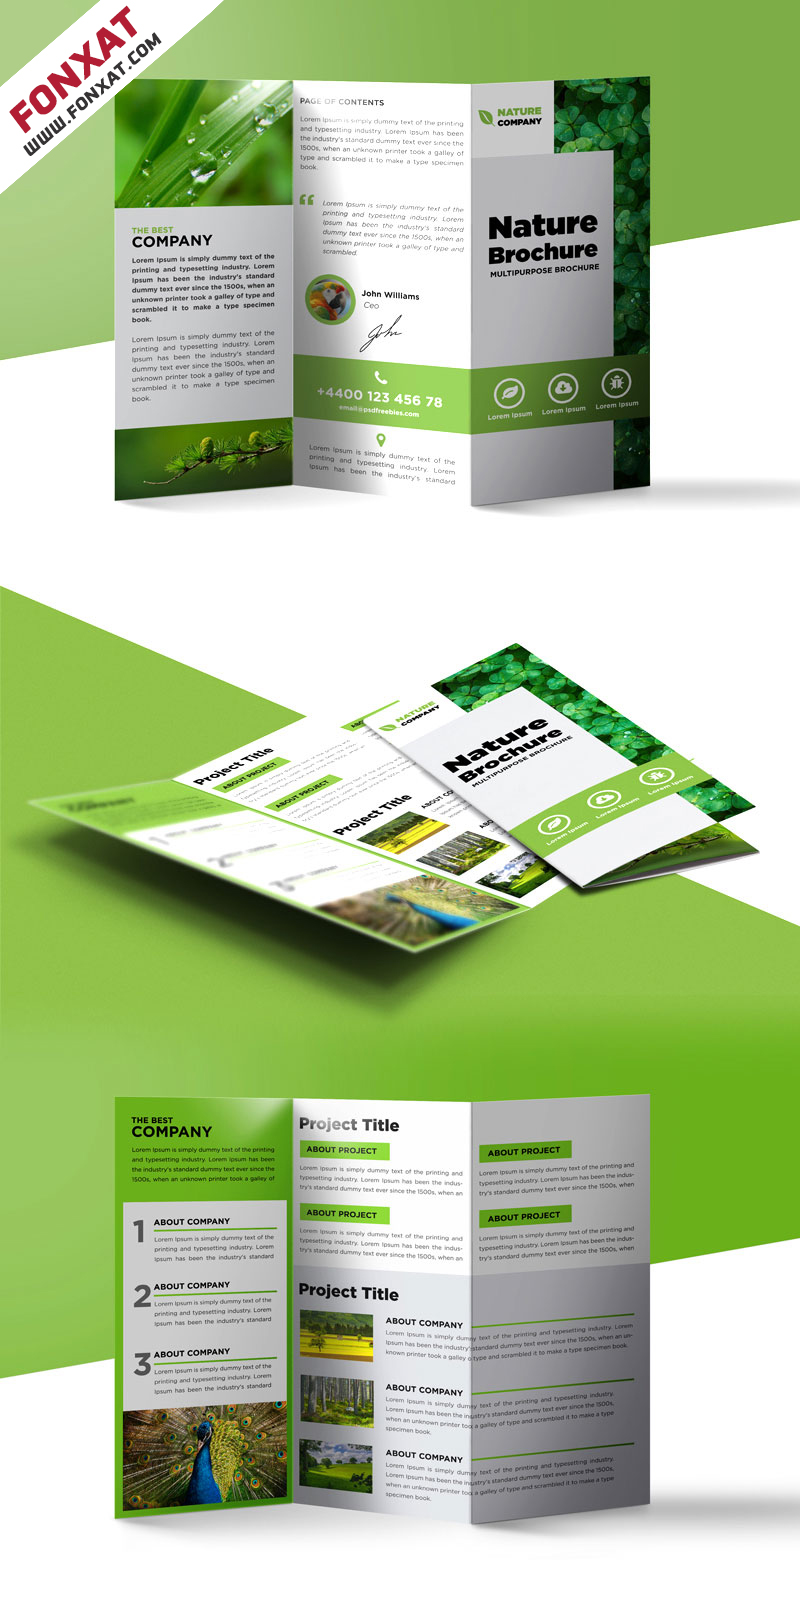 Nature-Tri-Fold-Brochure-Template-Free-PSD